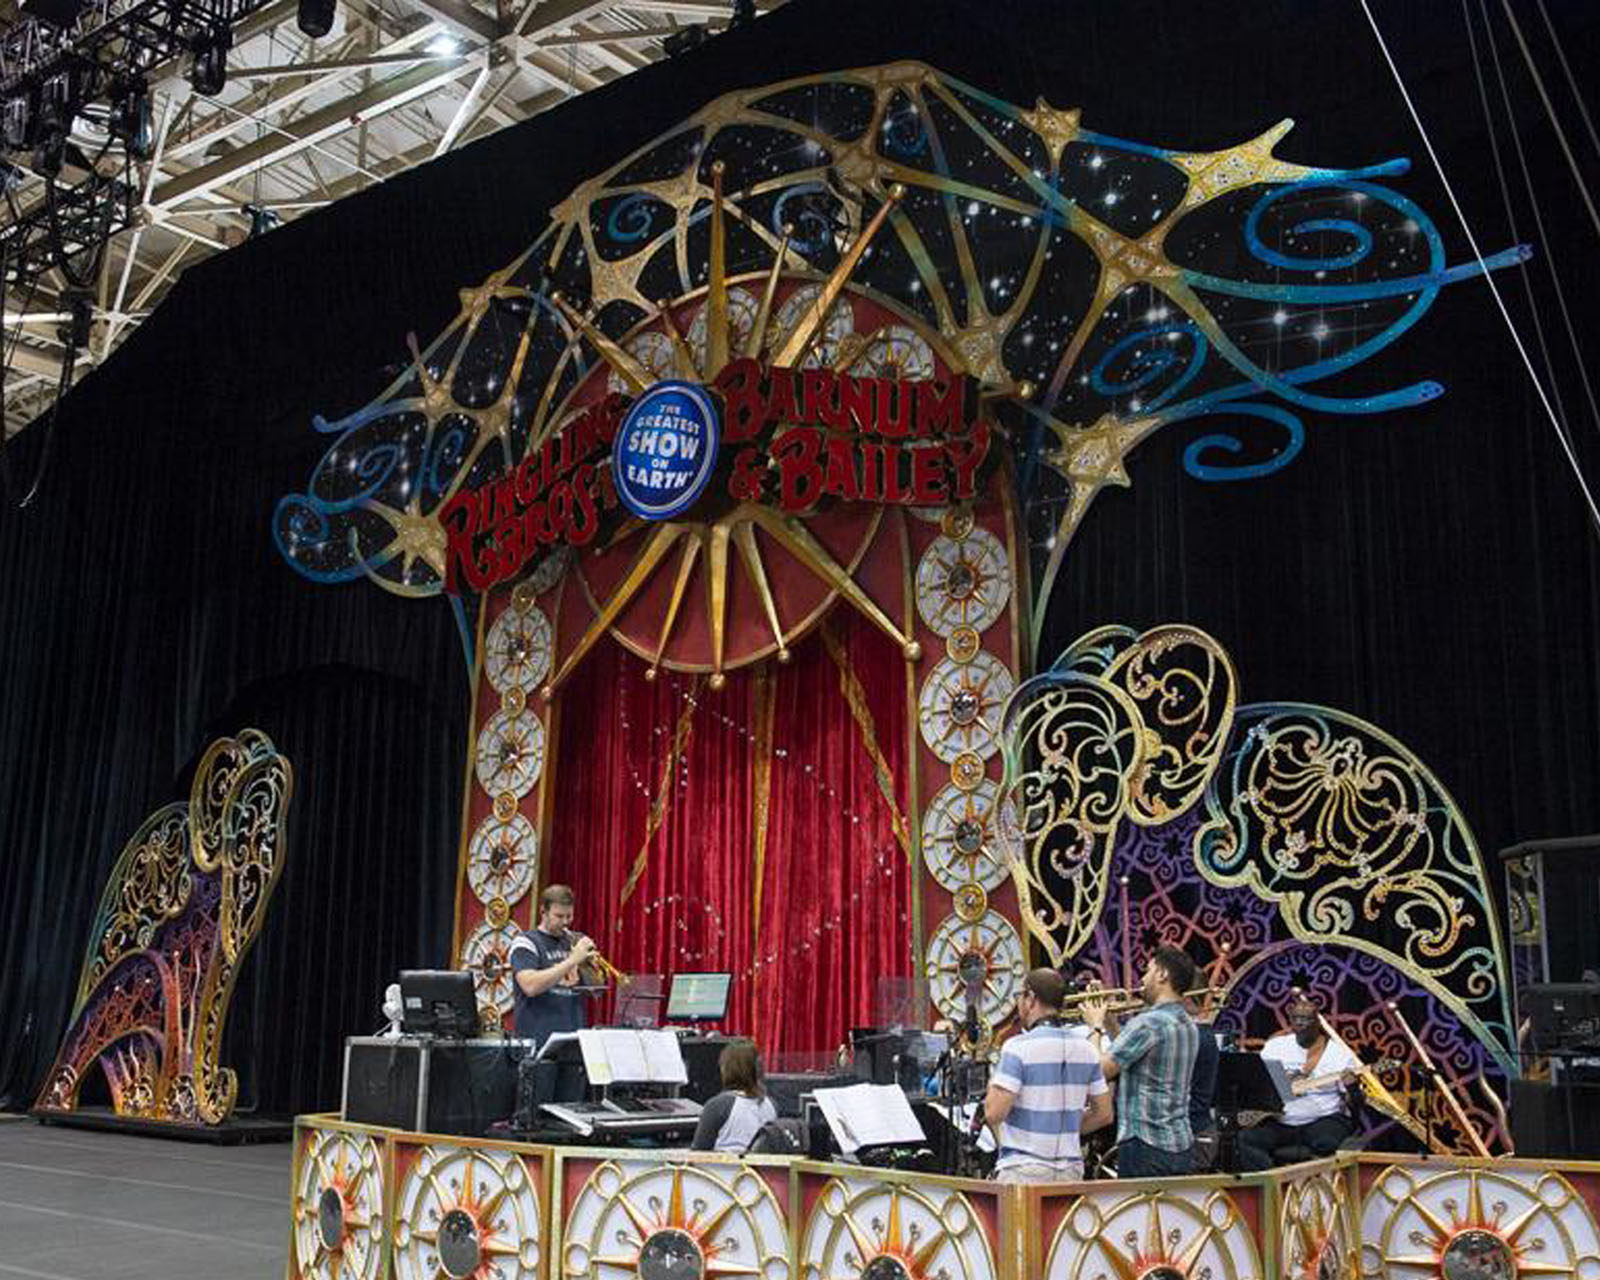 Rehearsal photo of the Portal and Elephant Gates from Tampa Fairgrounds.